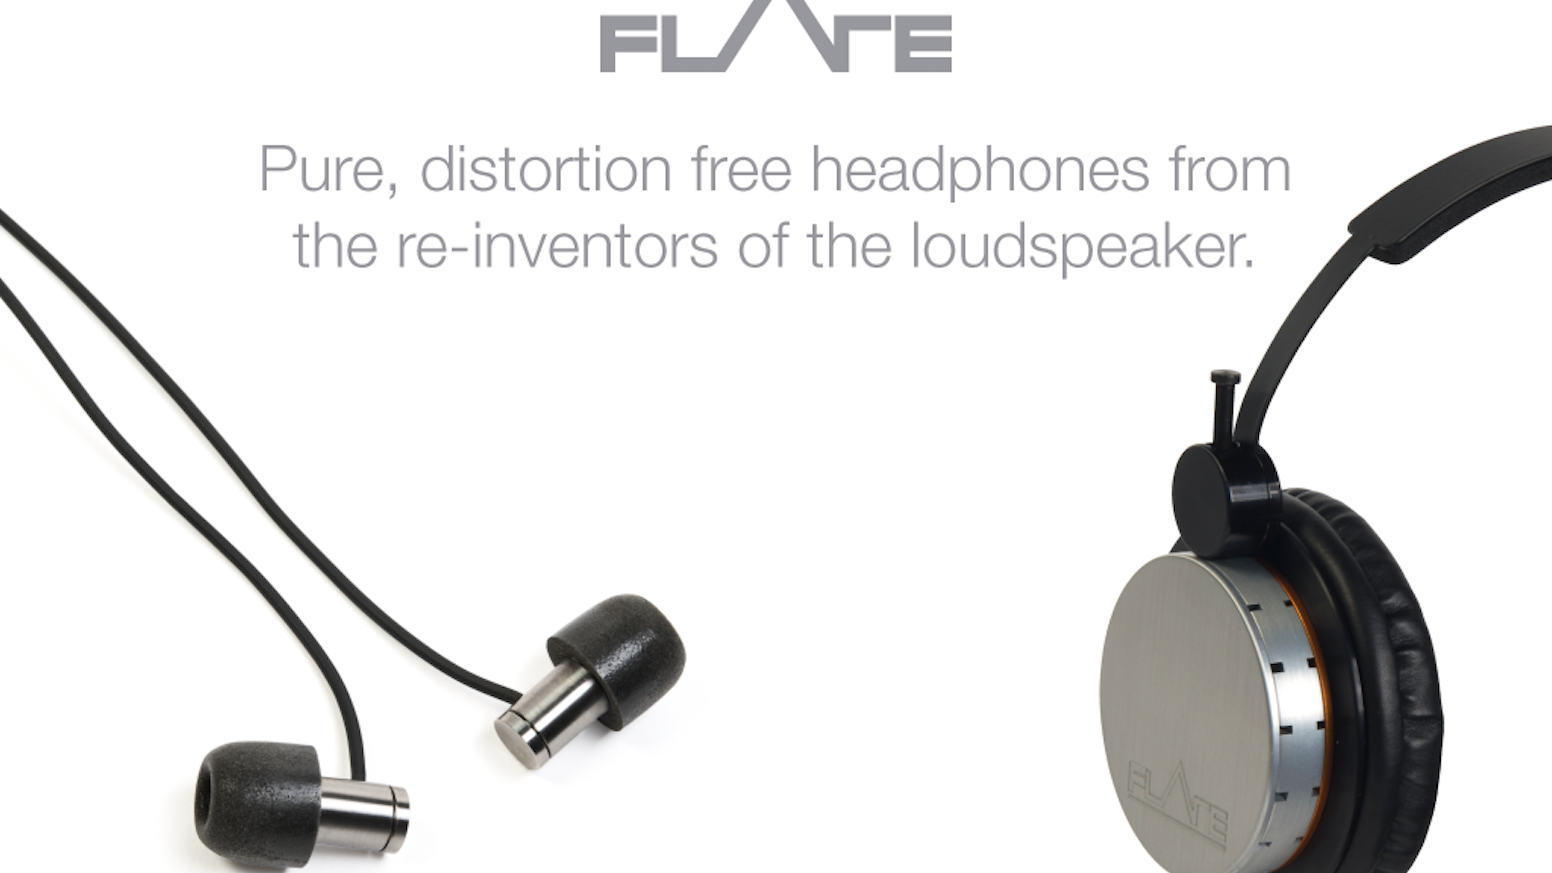 Distortion free, pressure-balanced IEM in-ear earphones and headphones from the re-inventors of the loudspeaker.